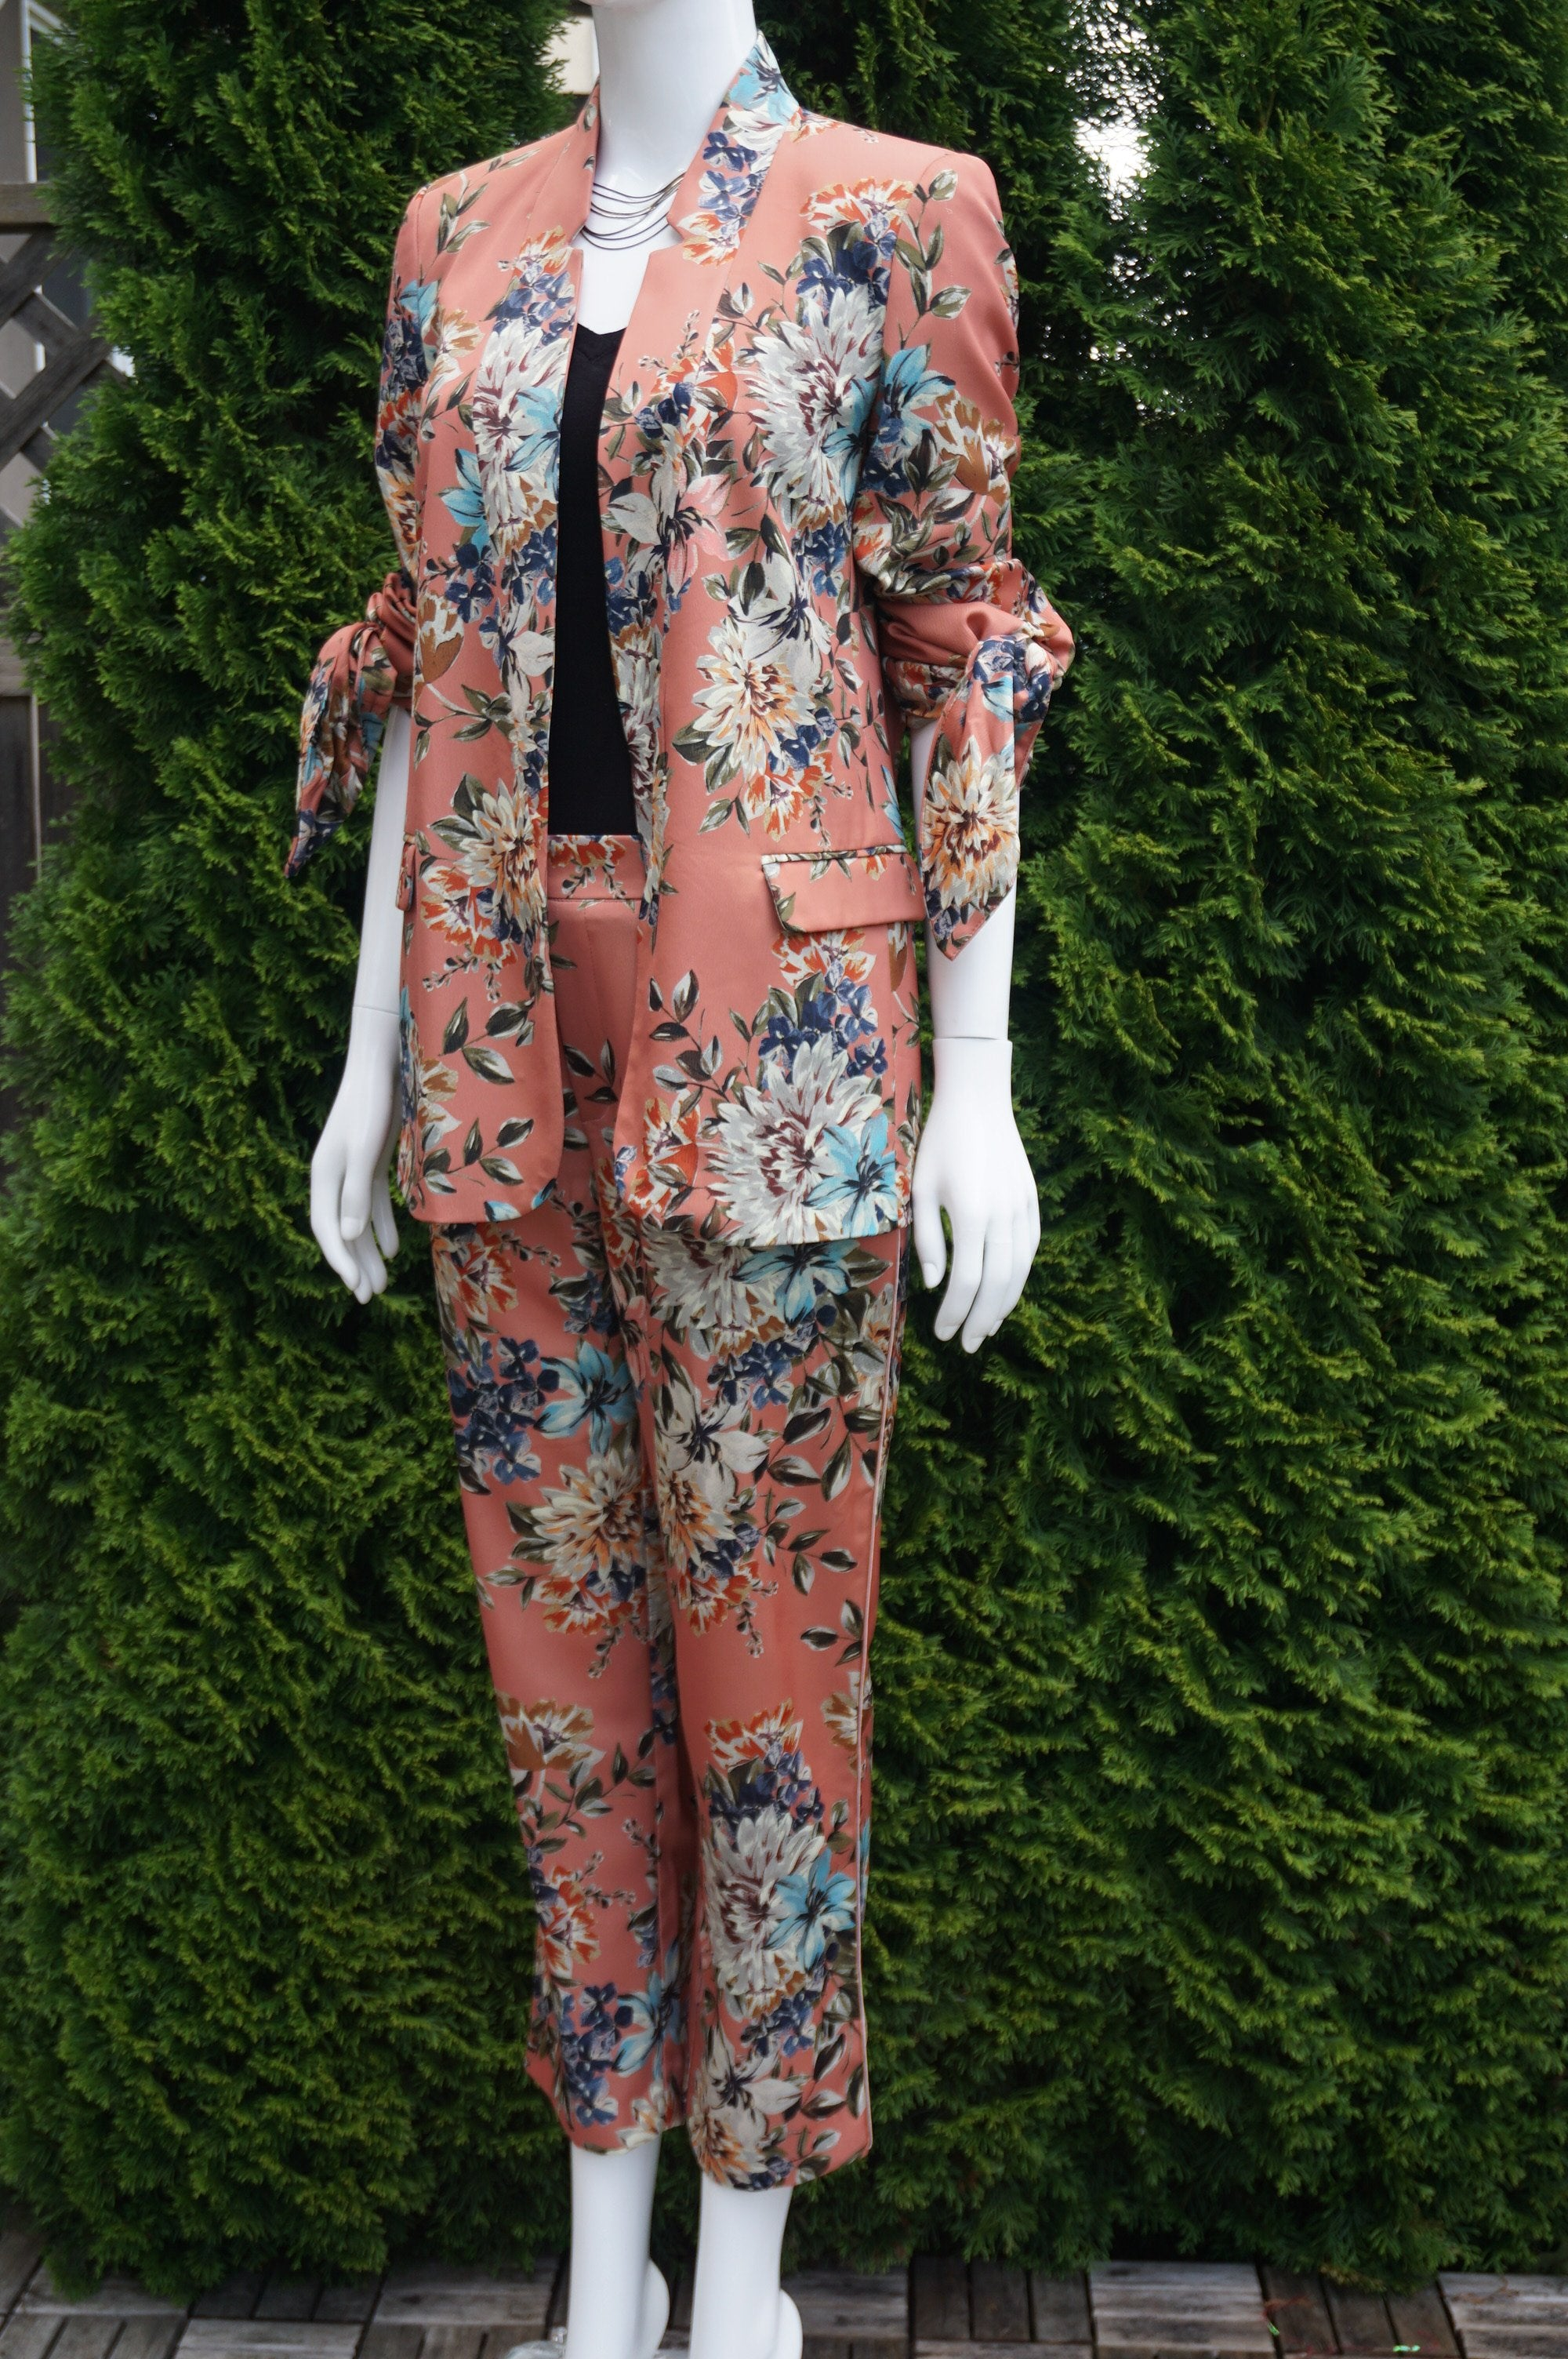 Zara Floral Pant Suit, This unique floral pantsuit helps you take on the world while looking feminine and elegant doing it. Pants length 36 inches, Waist 29 inches, elastic in the back. Suit jacket length 27 inches. Suit shoulder 15 inches. , Pink, Shell,100% Polyester. Lining 100% Acetate. Fabric made in Morocco. , women's Jackets & Coats, Pants, women's Pink Jackets & Coats, Pants, Zara women's Jackets & Coats, Pants, women's pantsuit, women's pant suit, floral pink suit